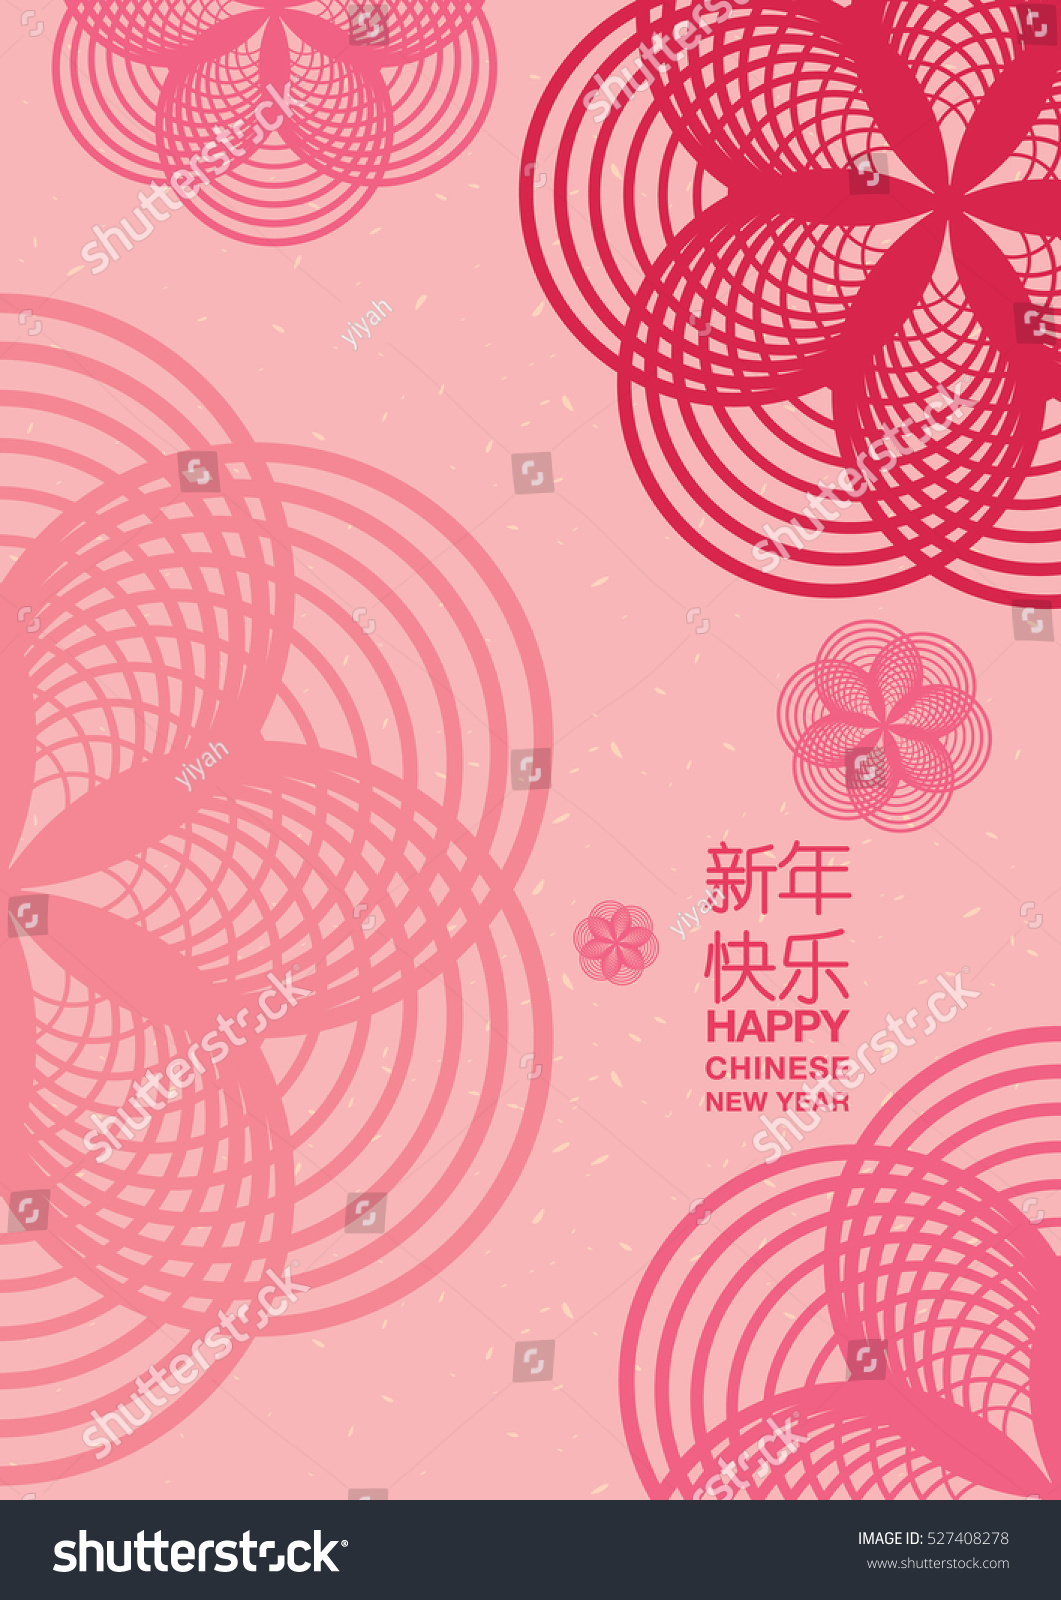 Design poster new - Chinese New Year Vector Design Poster Chinese Translation Happy Chinese New Year